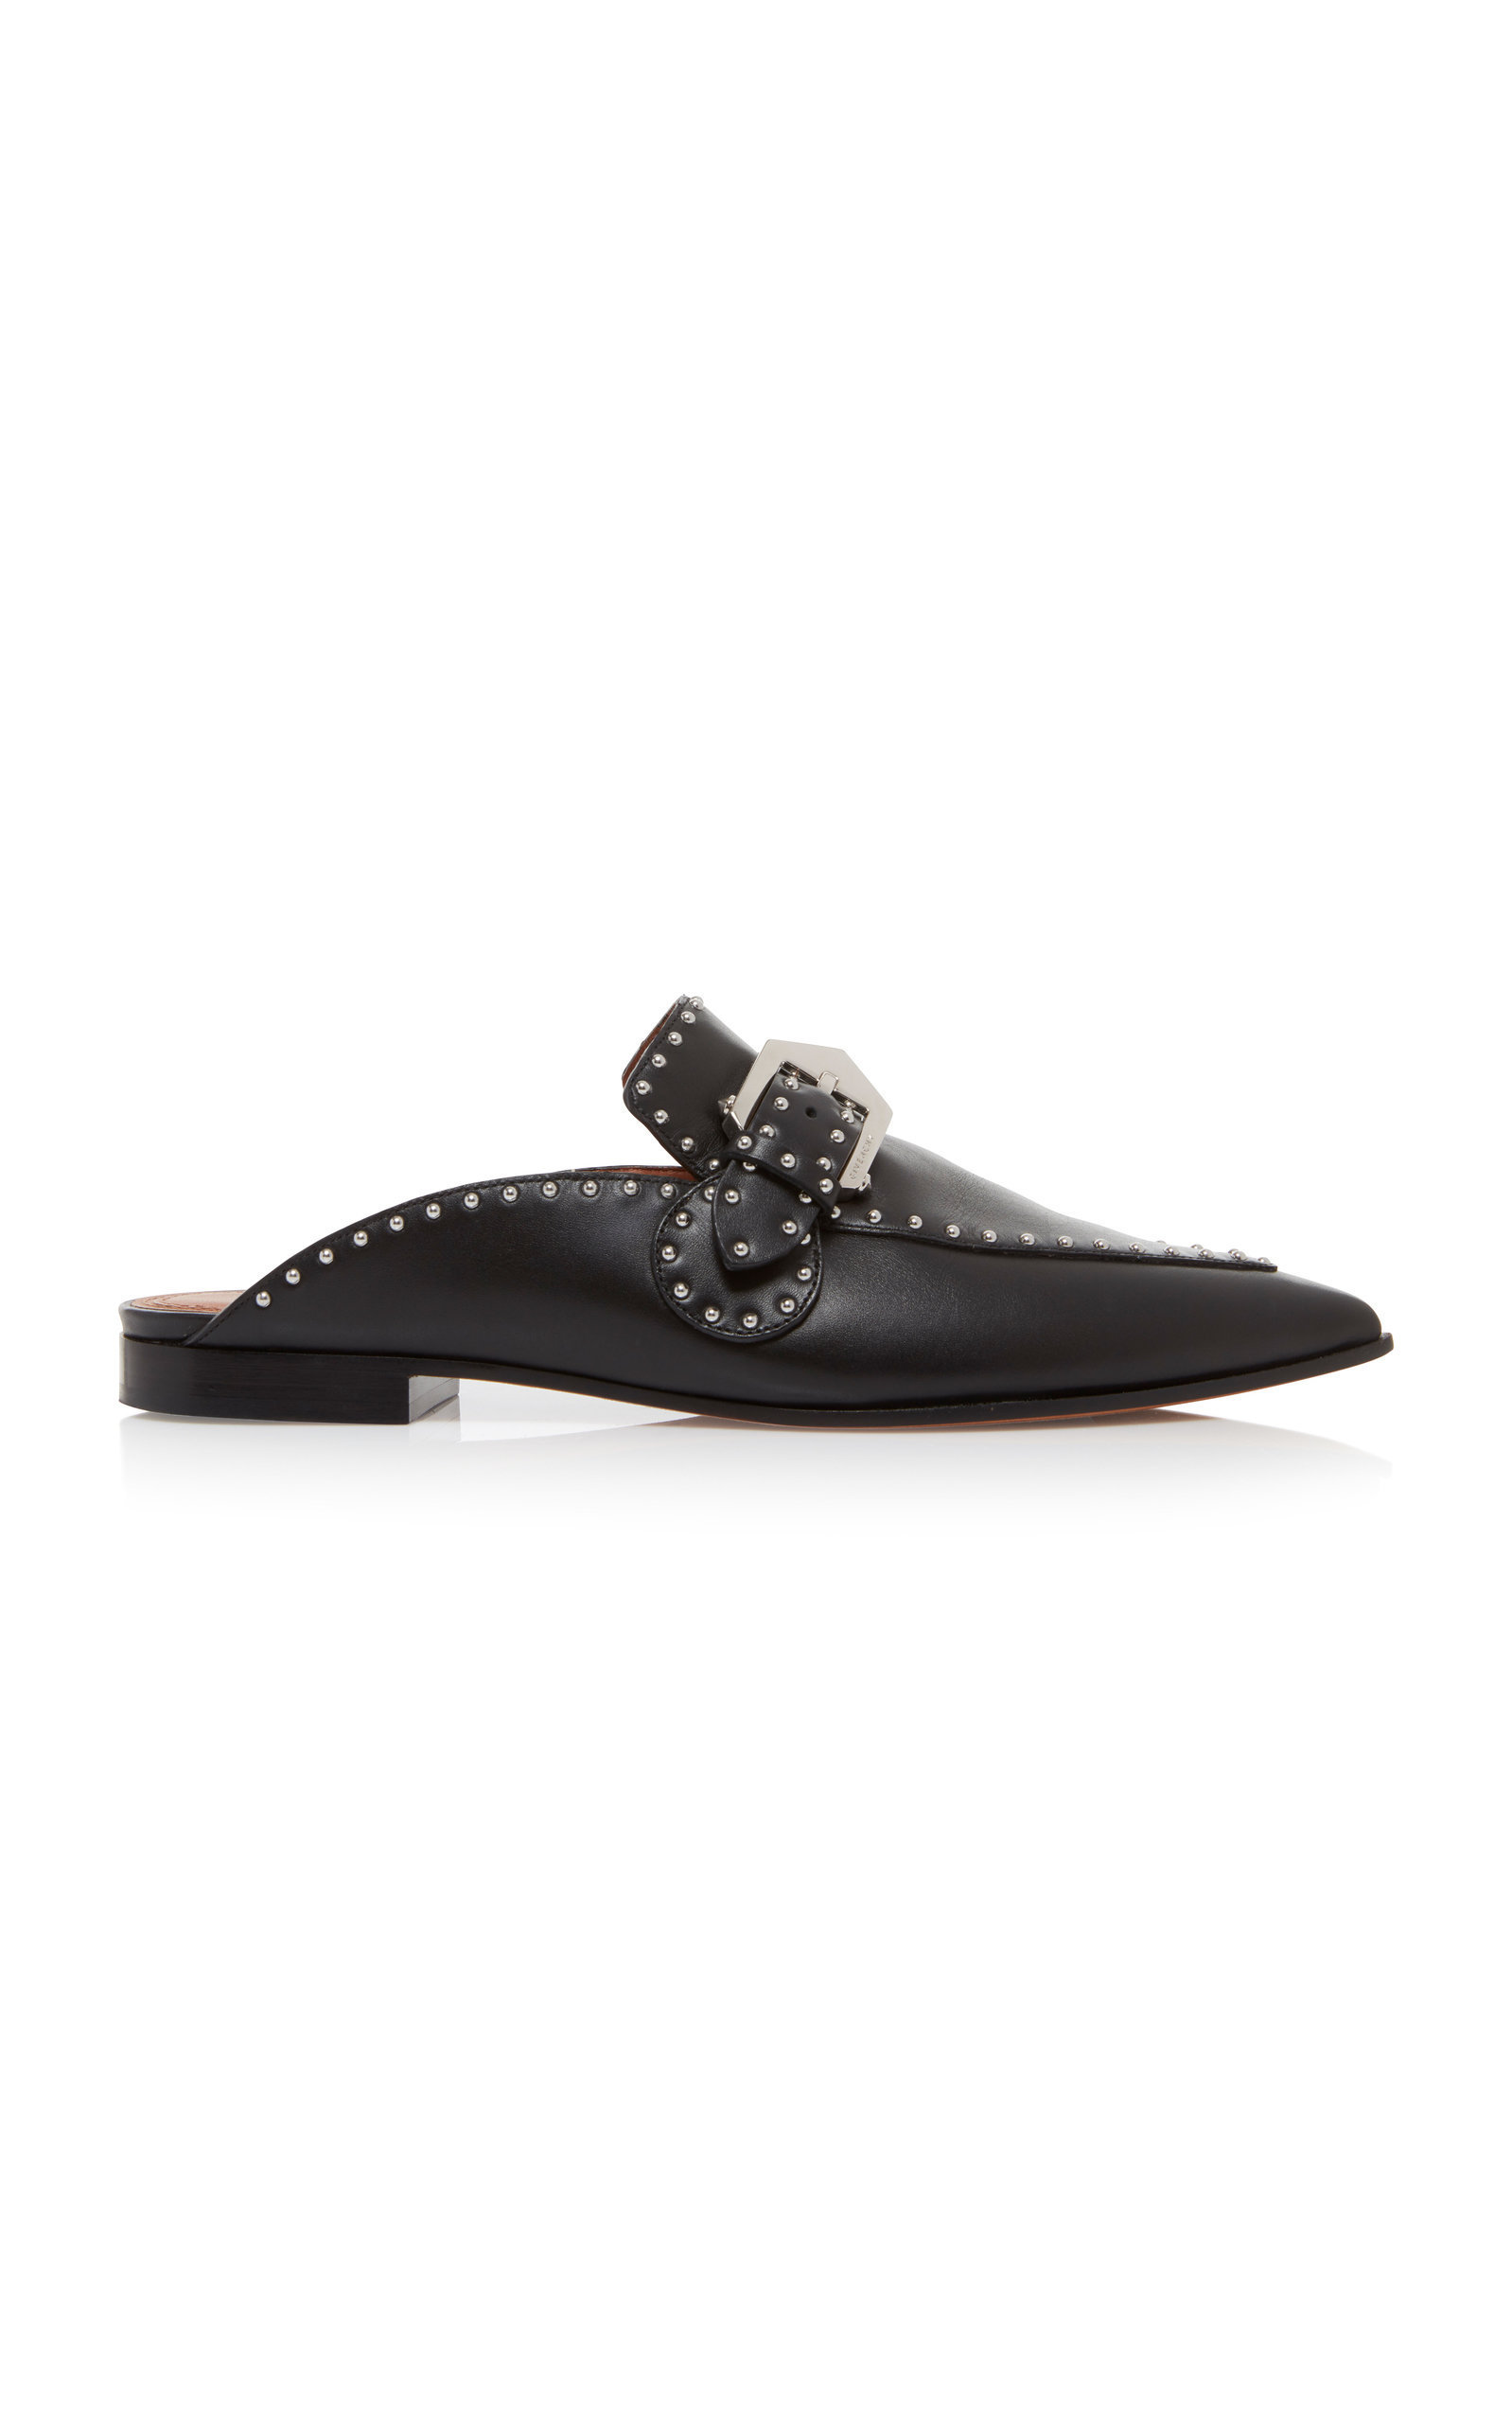 c17774634fa Givenchy Elegant Studded Leather Backless Loafers In Black